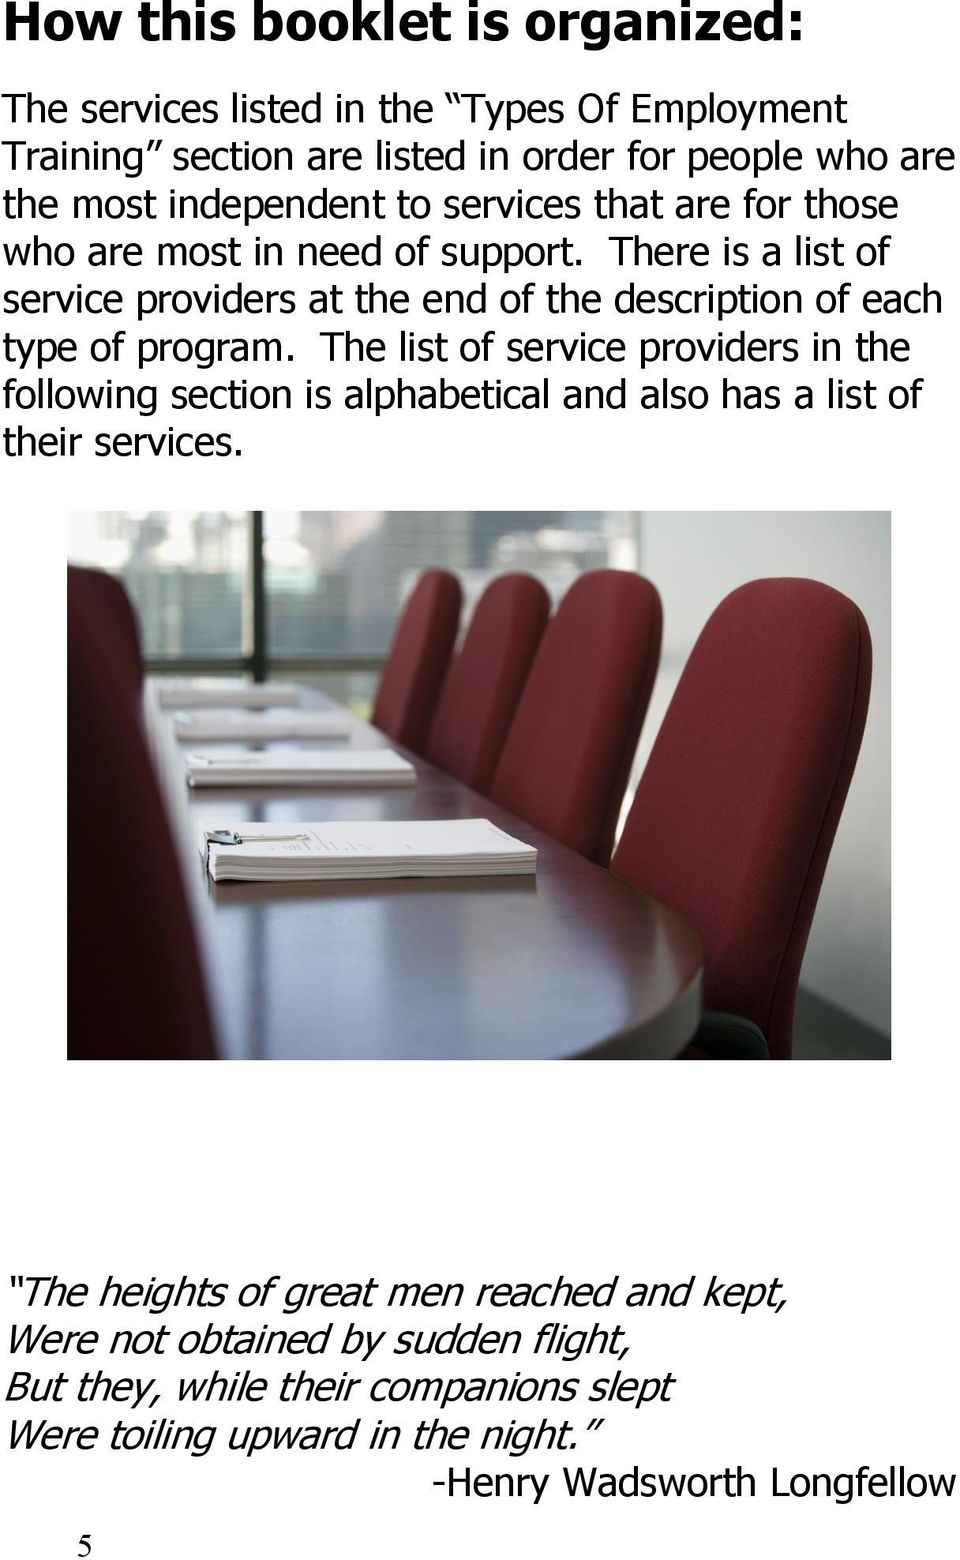 There is a list of service providers at the end of the description of each type of program.